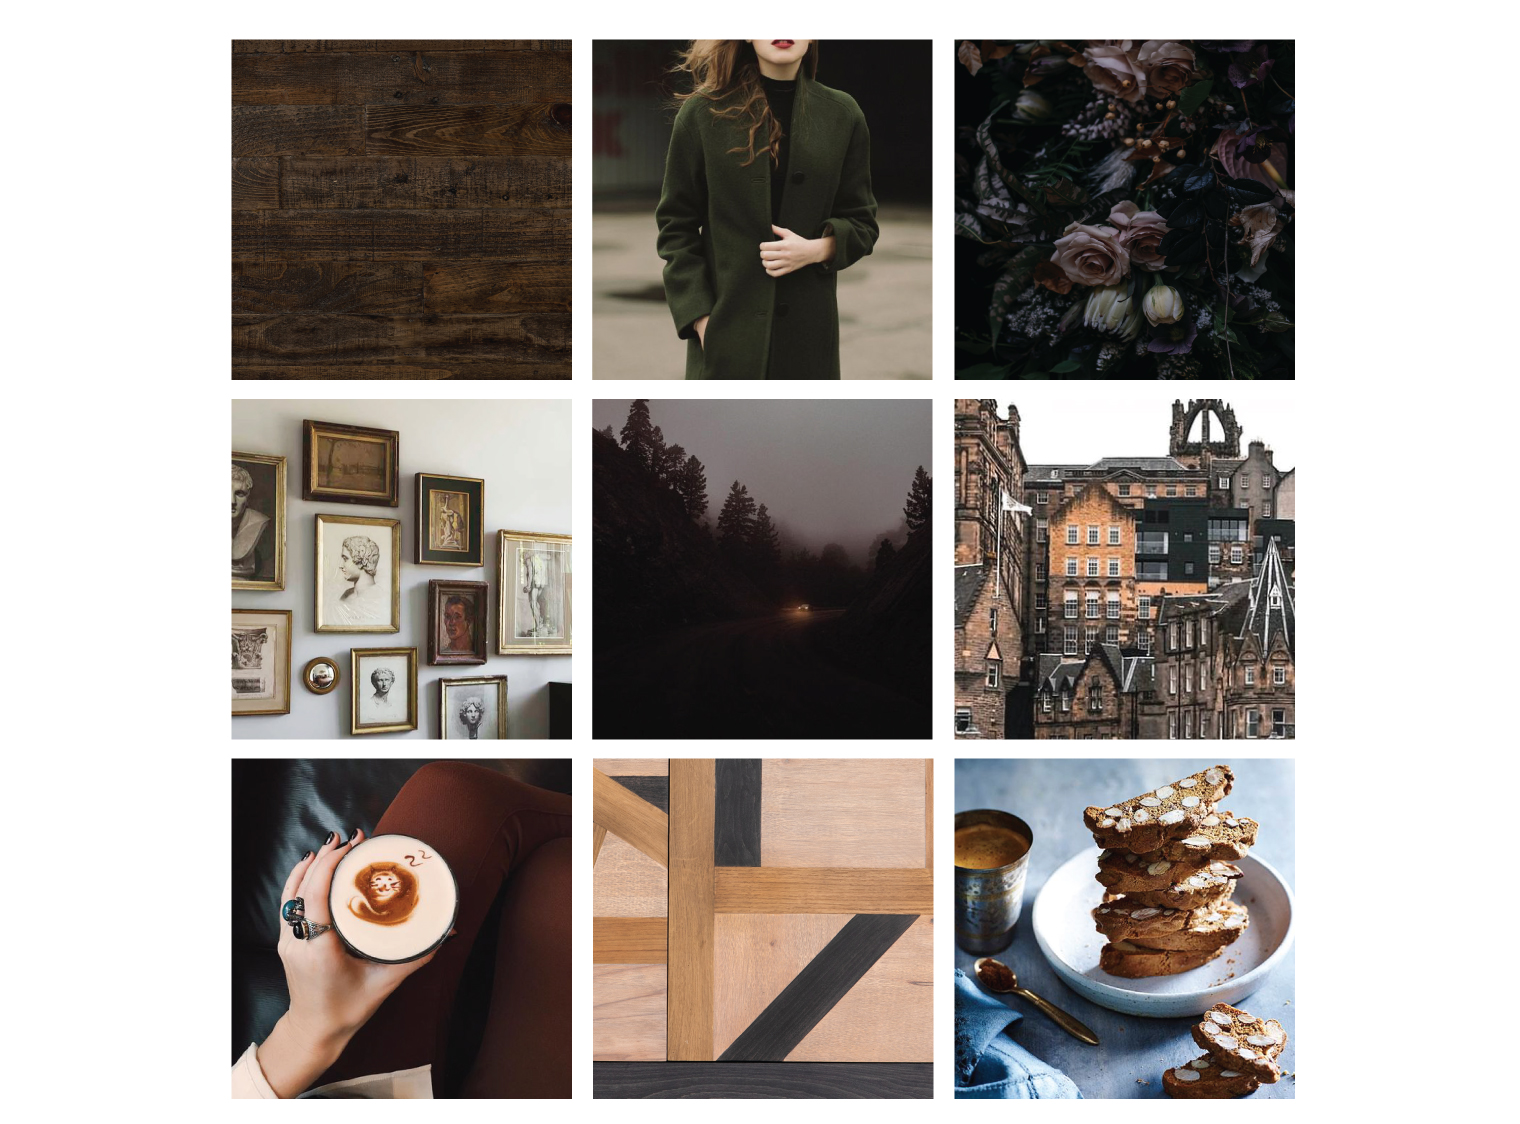 October Set the Fall Mood Board